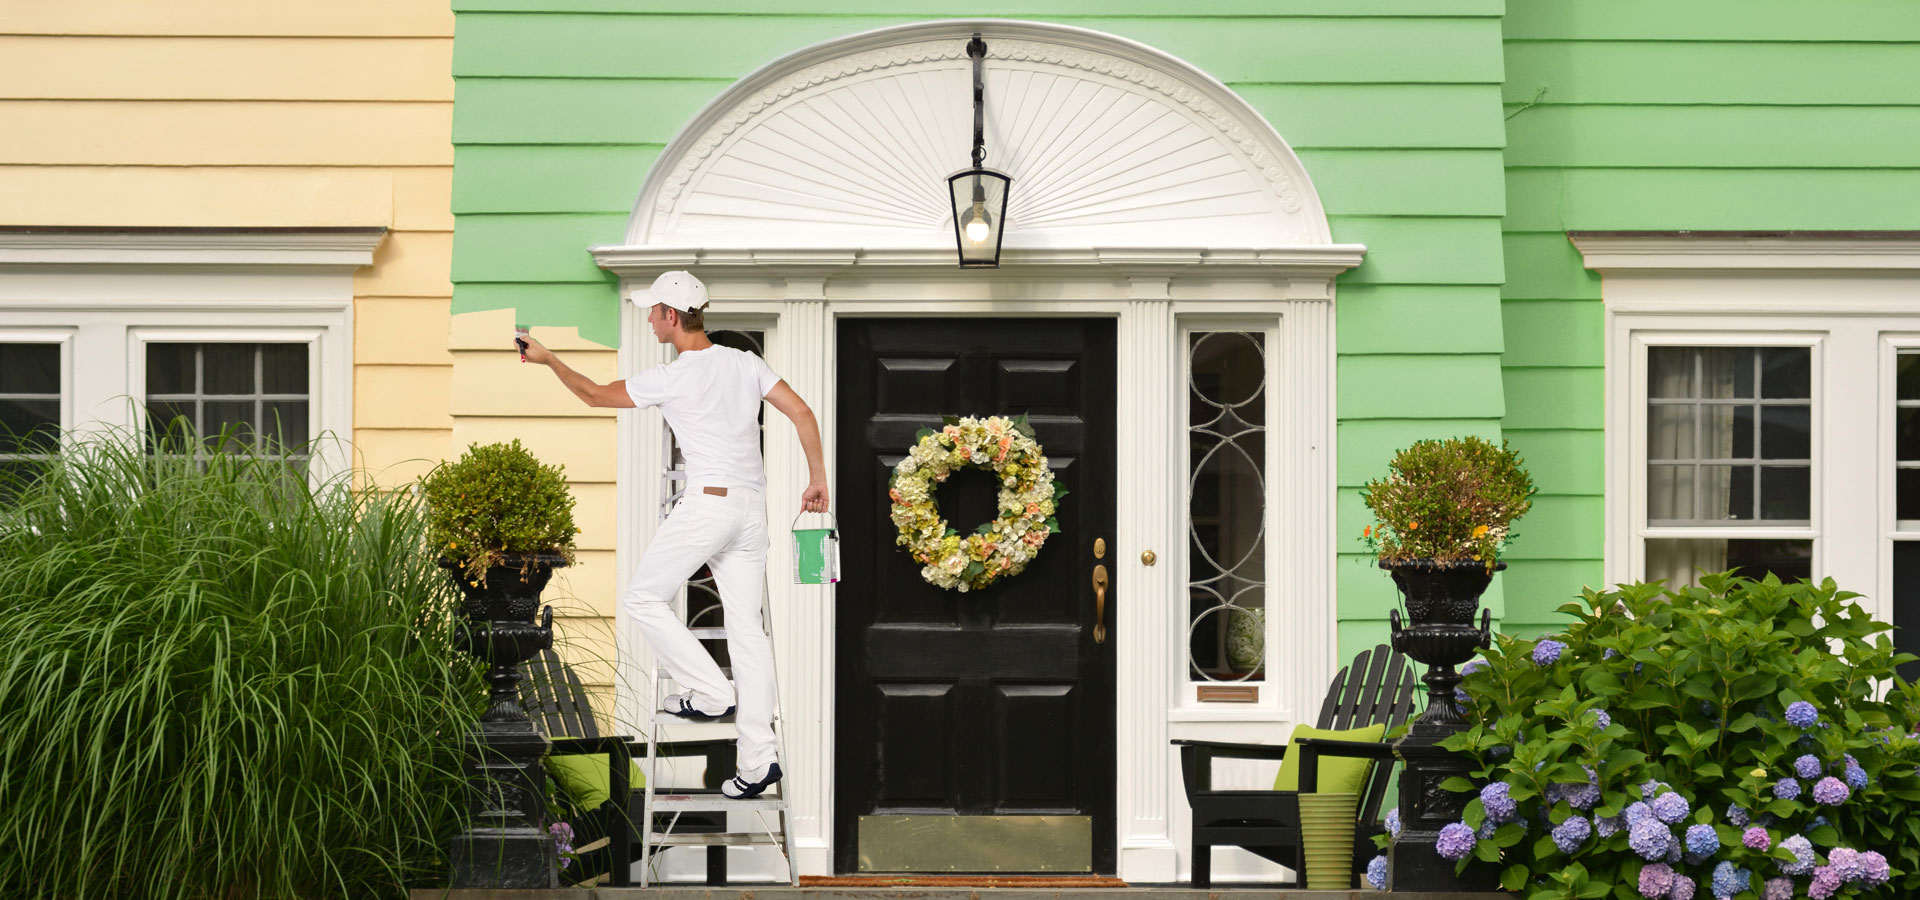 Paint Doctor, Inc. - Newark Painting Contractor